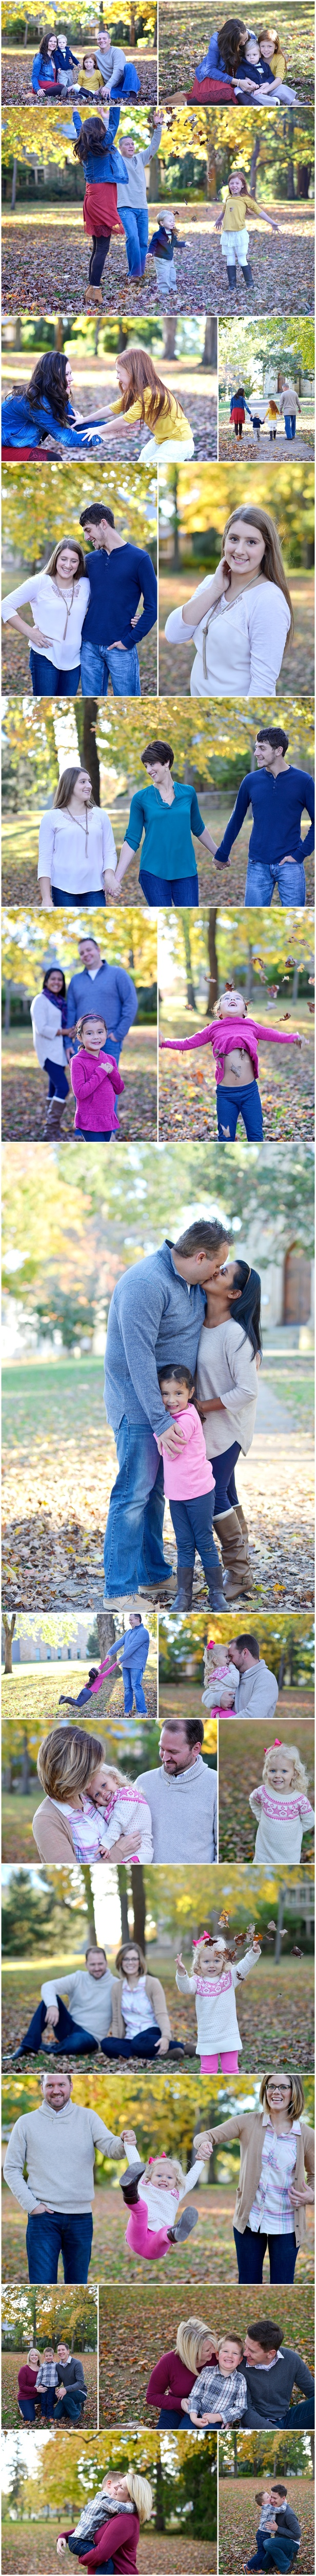 Fall Mini Photo Session Columbus Ohio